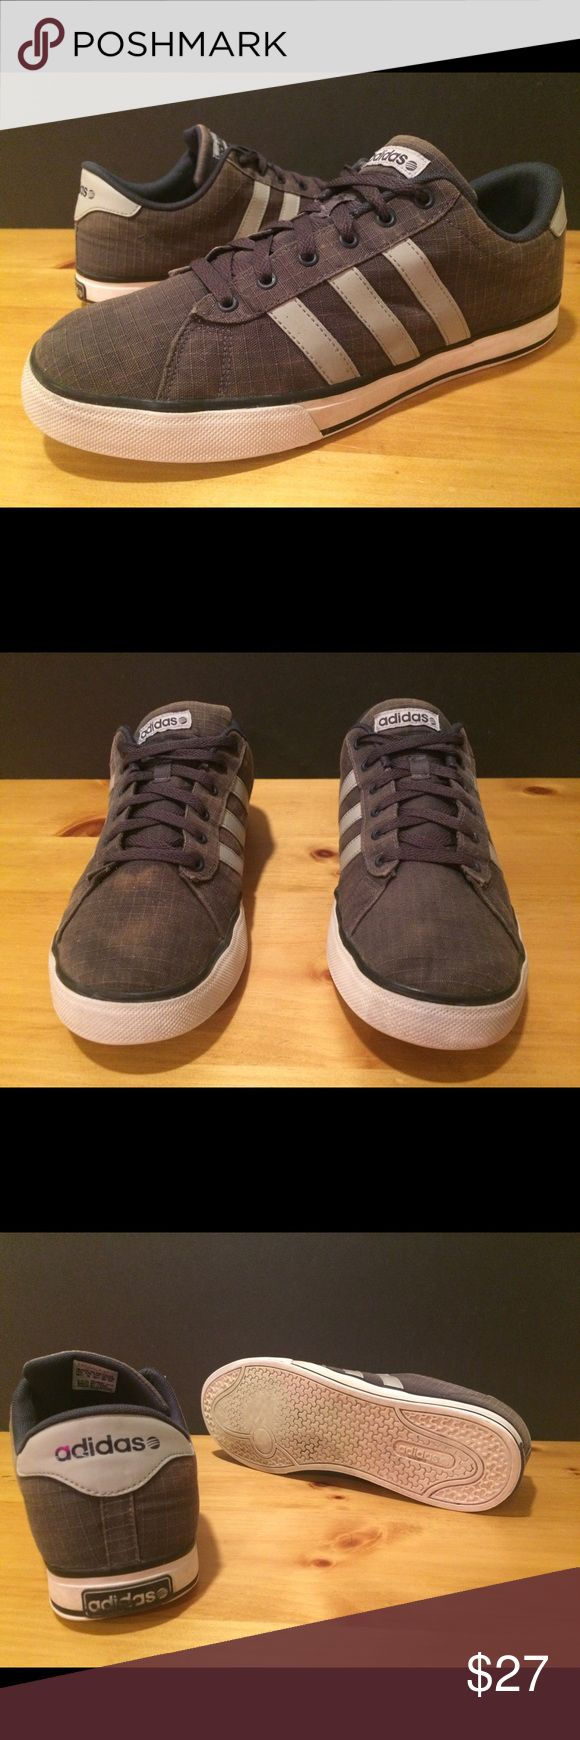 Men's Size 10.5 Gray & Blue Adidas Shoes Men's size 10.5 blue & gray Adidas shoes. See photos and please message with any questions! :) Adidas Shoes Sneakers